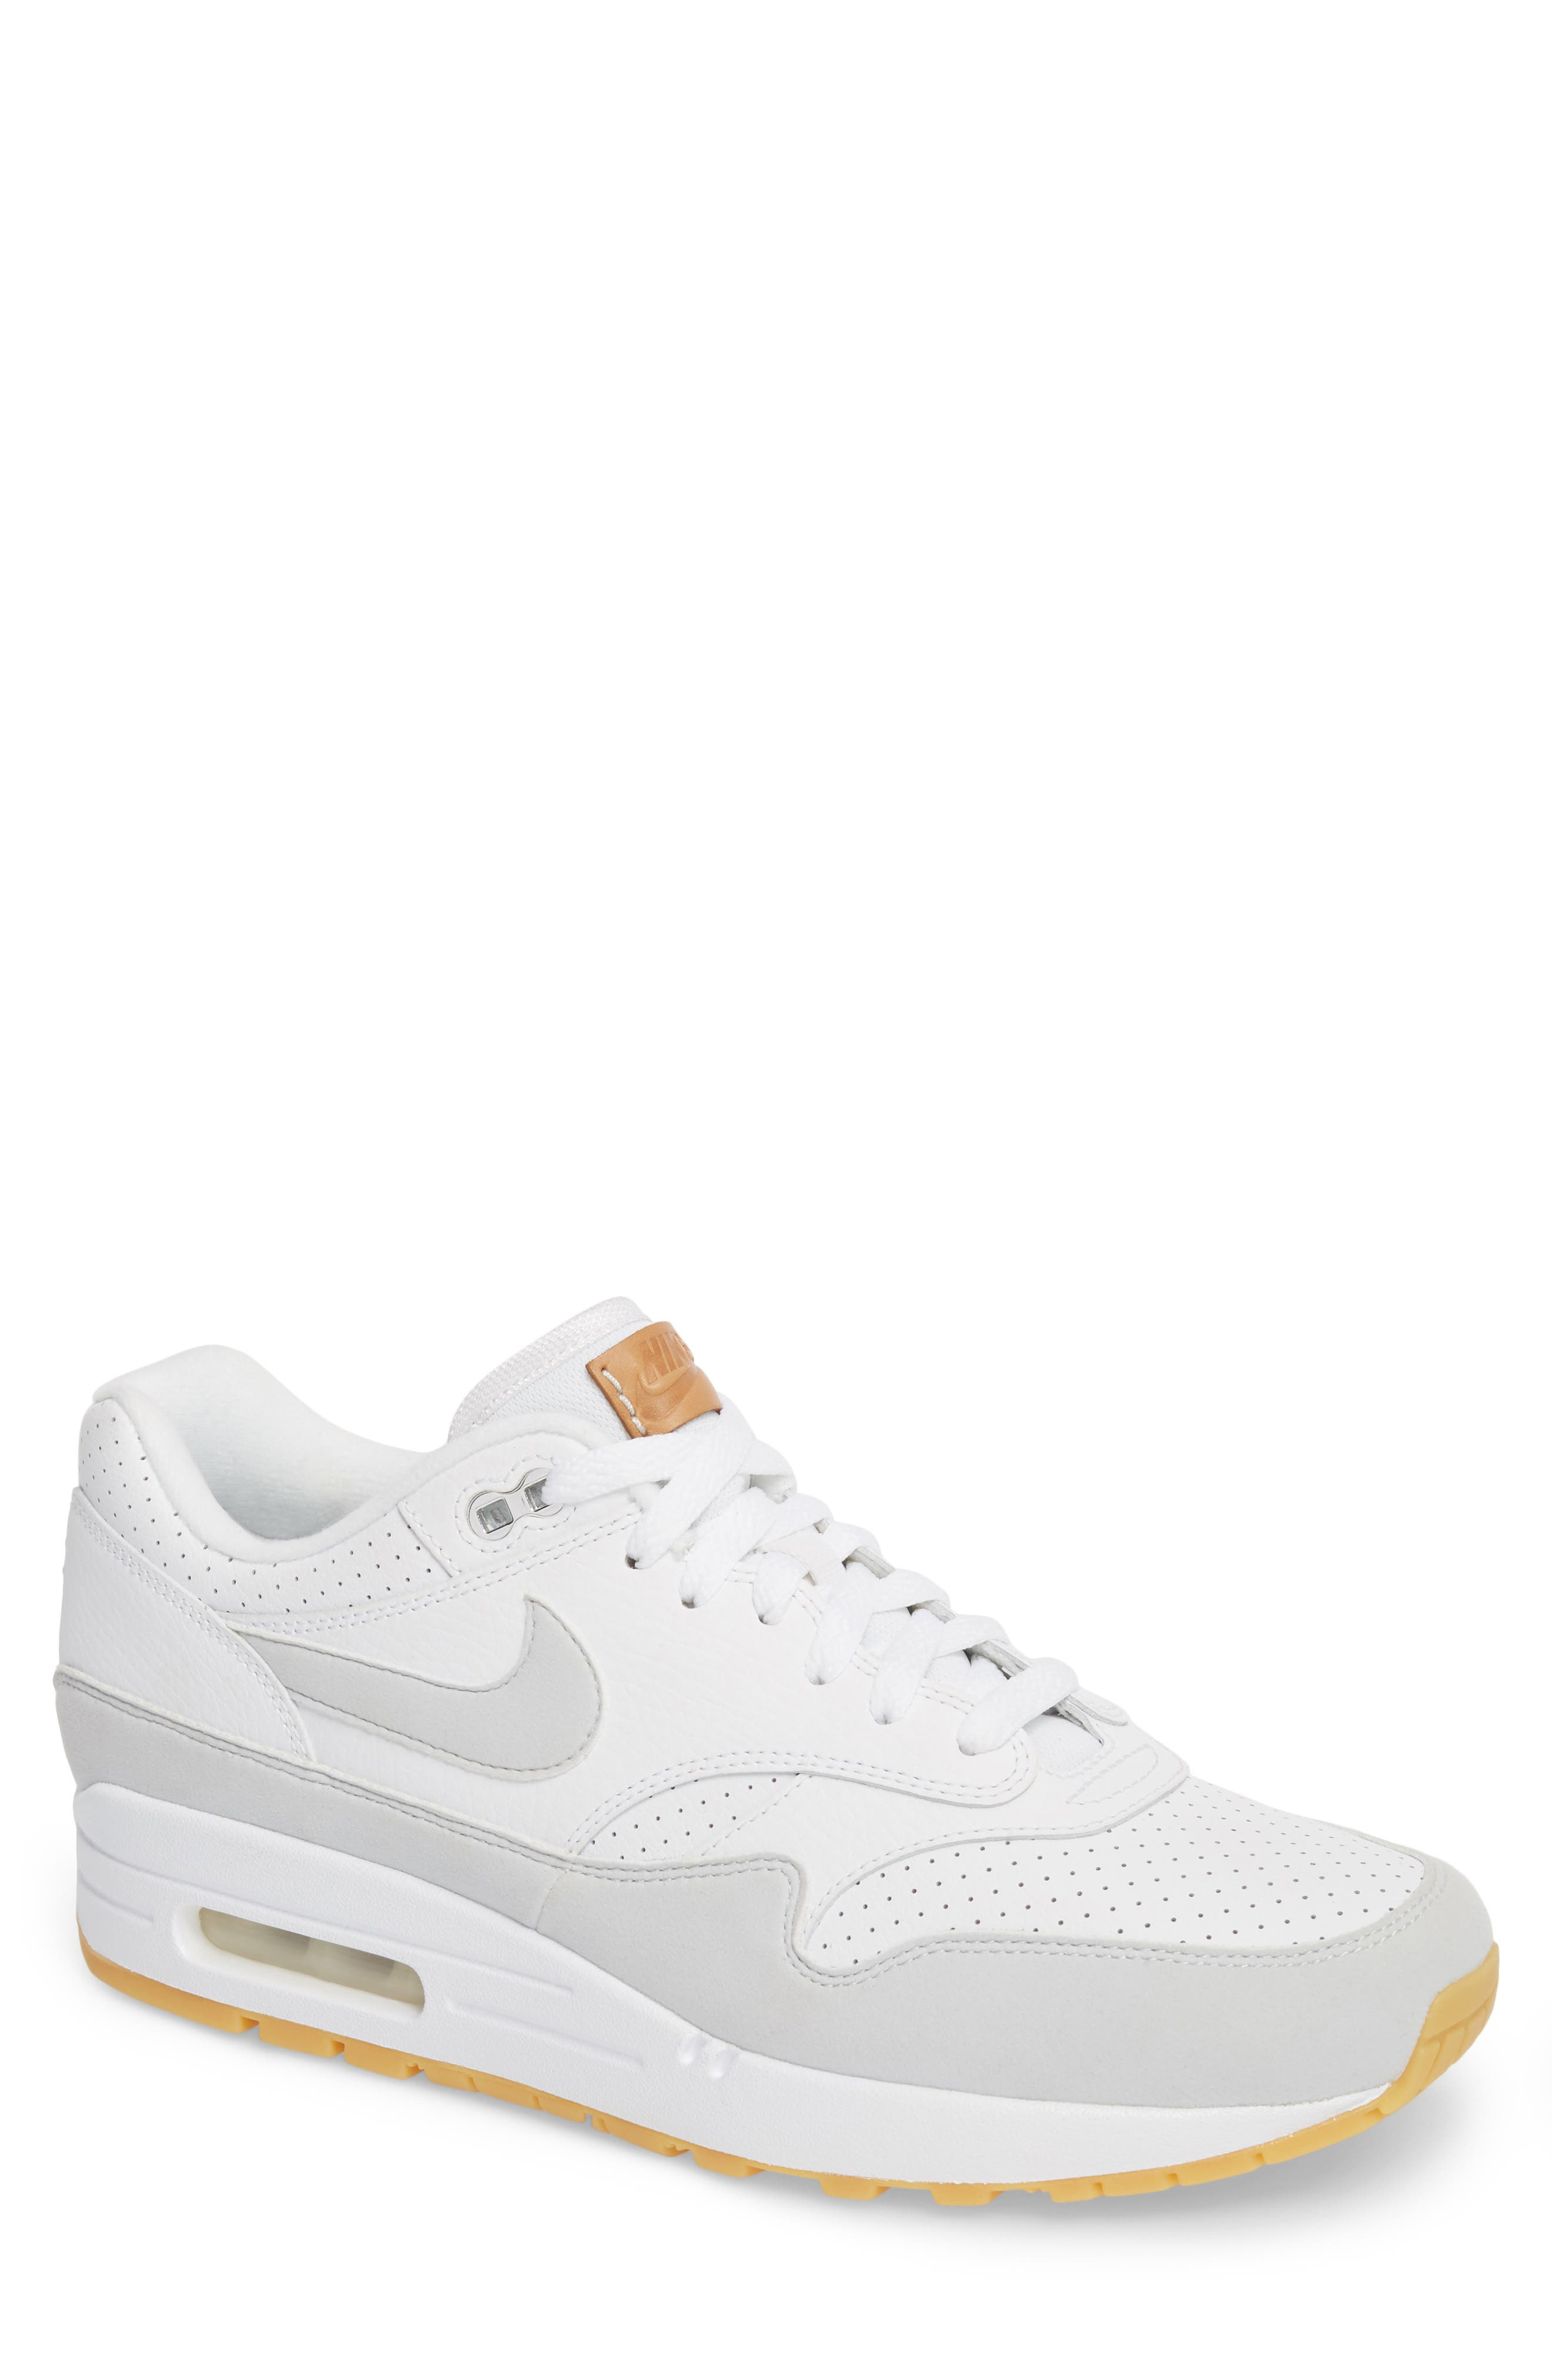 Air Max 1 Sneaker,                             Main thumbnail 1, color,                             WHITE/ PURE PLATINUM/ YELLOW